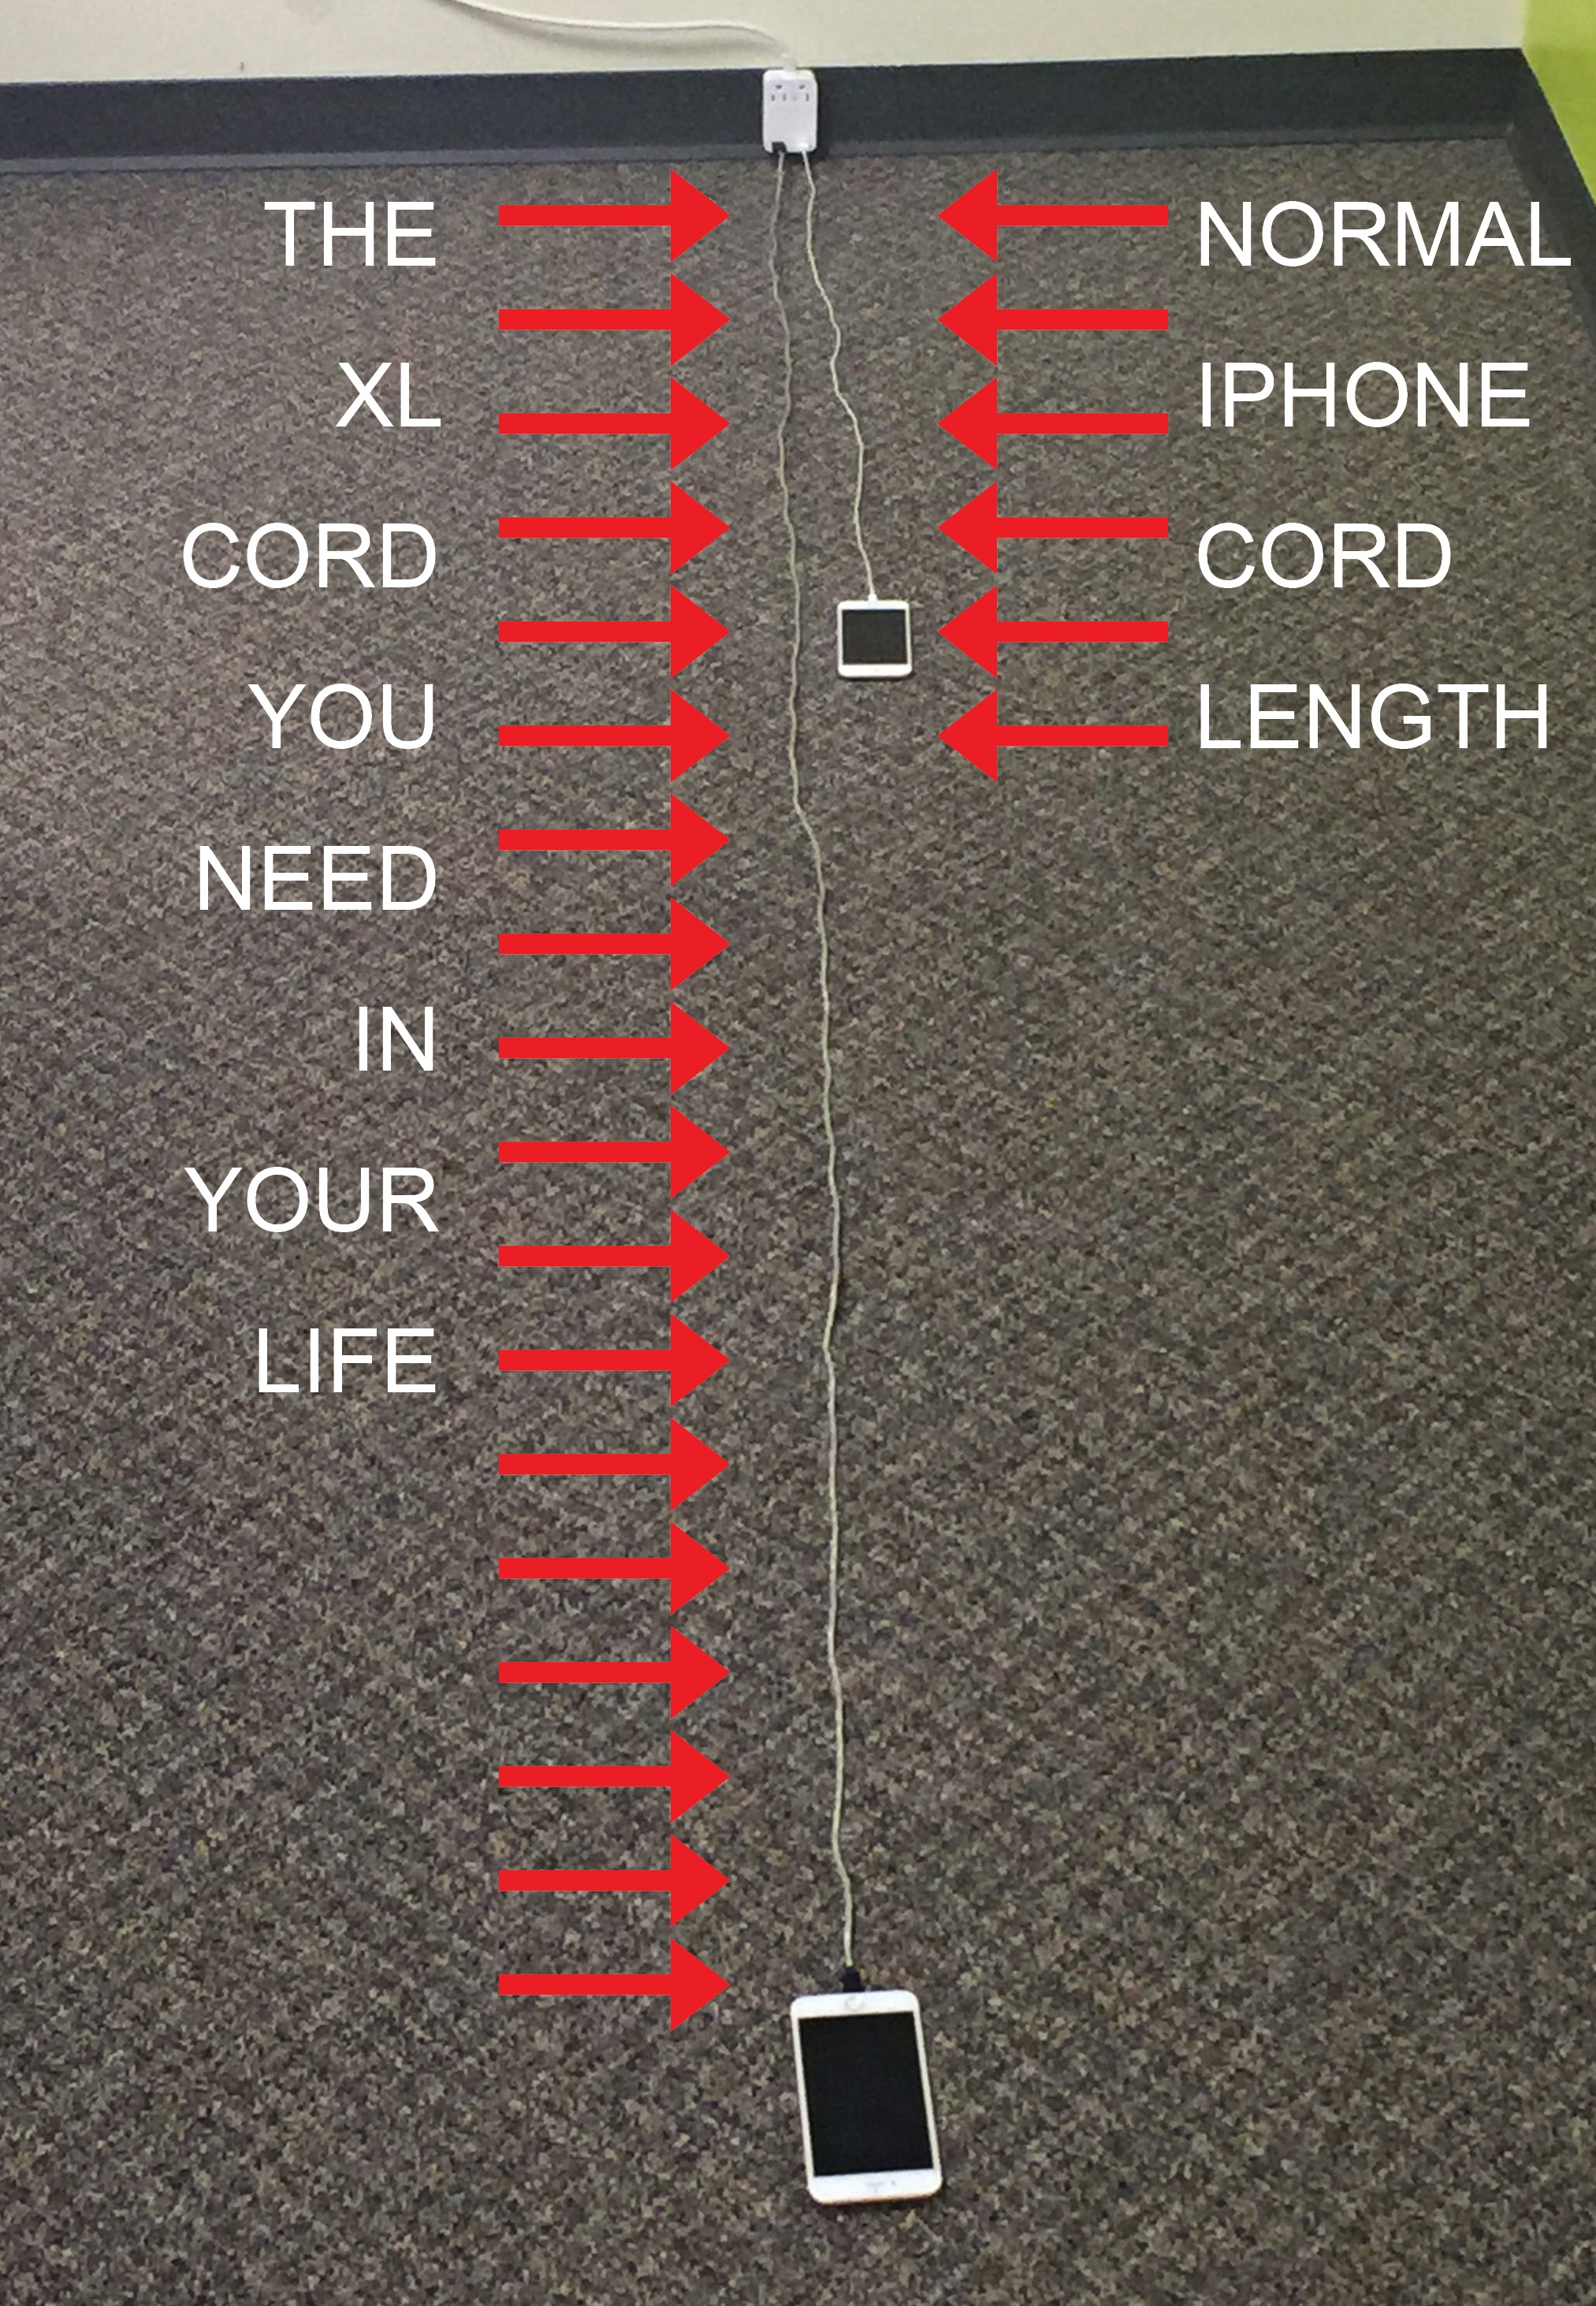 Why you need a 9-foot long USB charging cable in your life